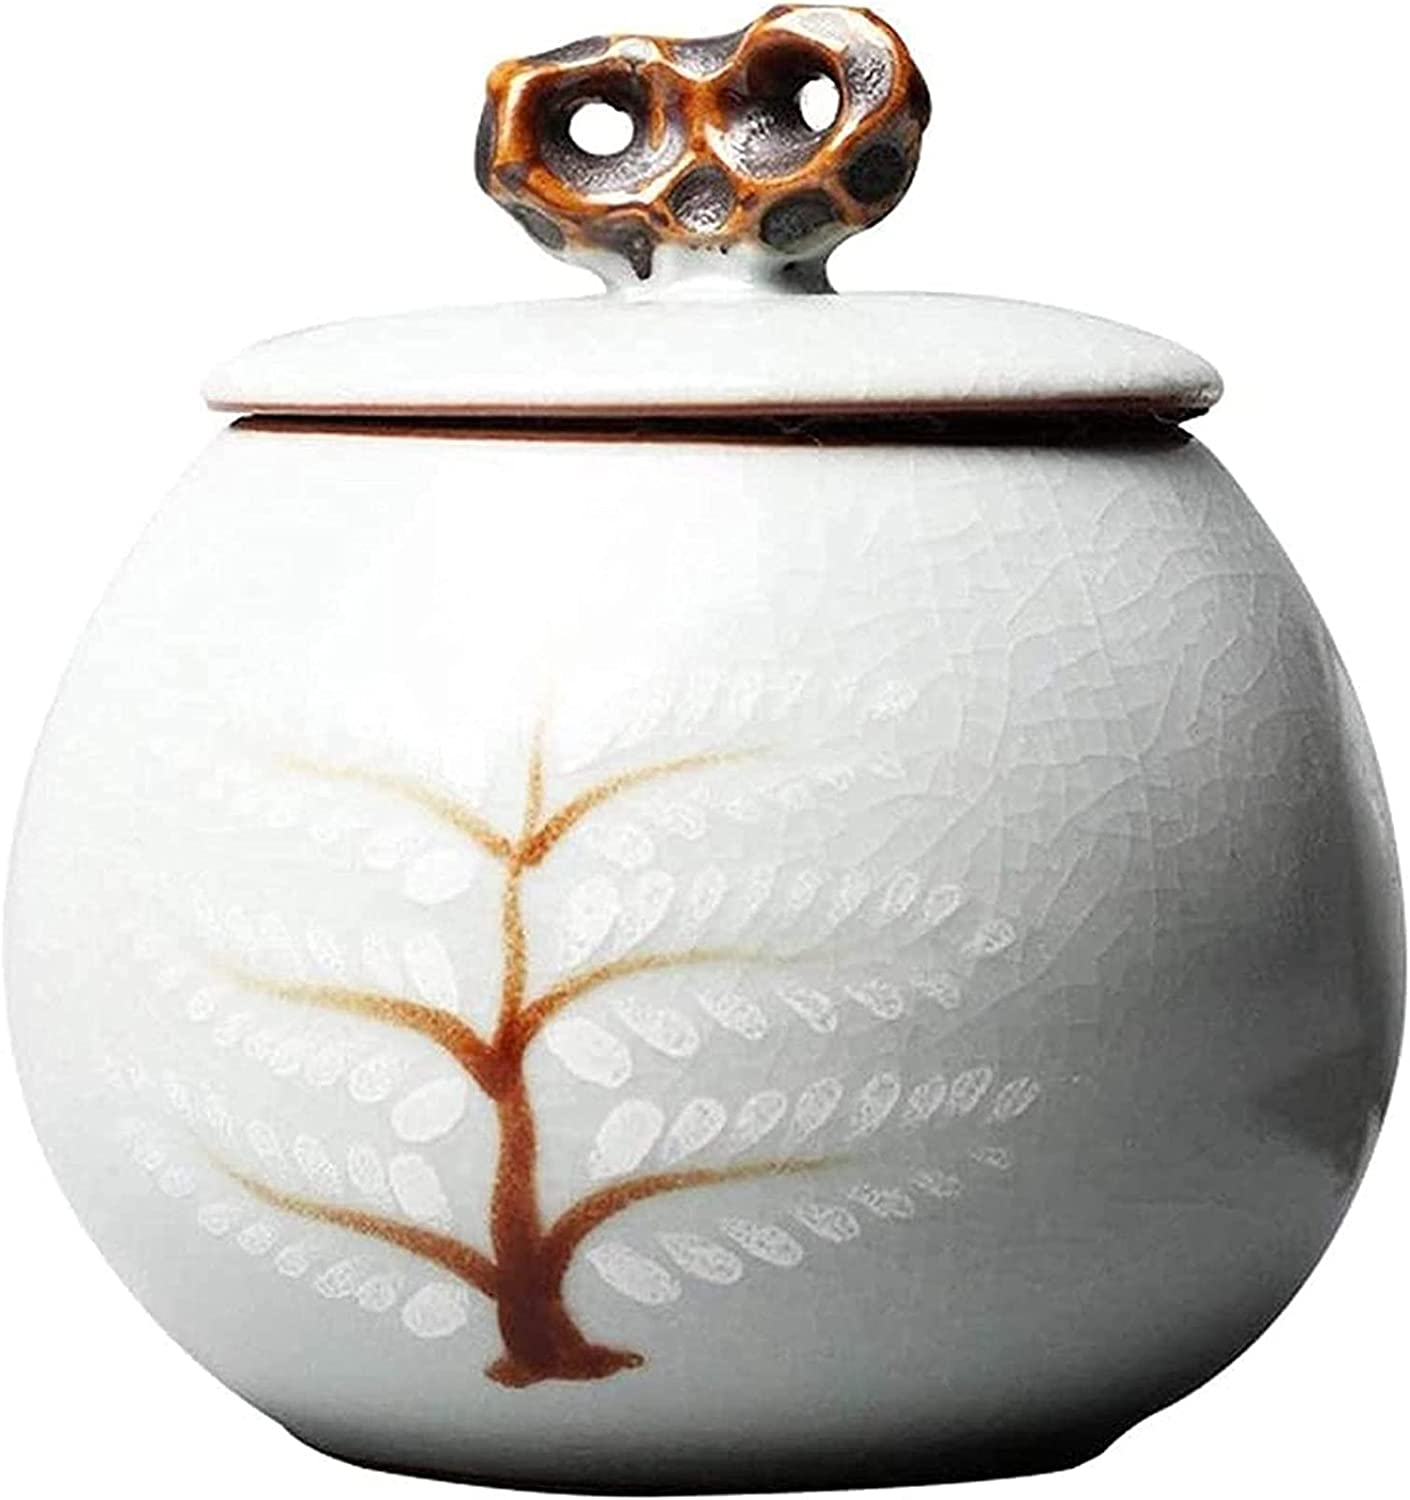 MTFZD Deluxe Small Ceramic Cremation Max 57% OFF Urns or Pet Ashes for Human